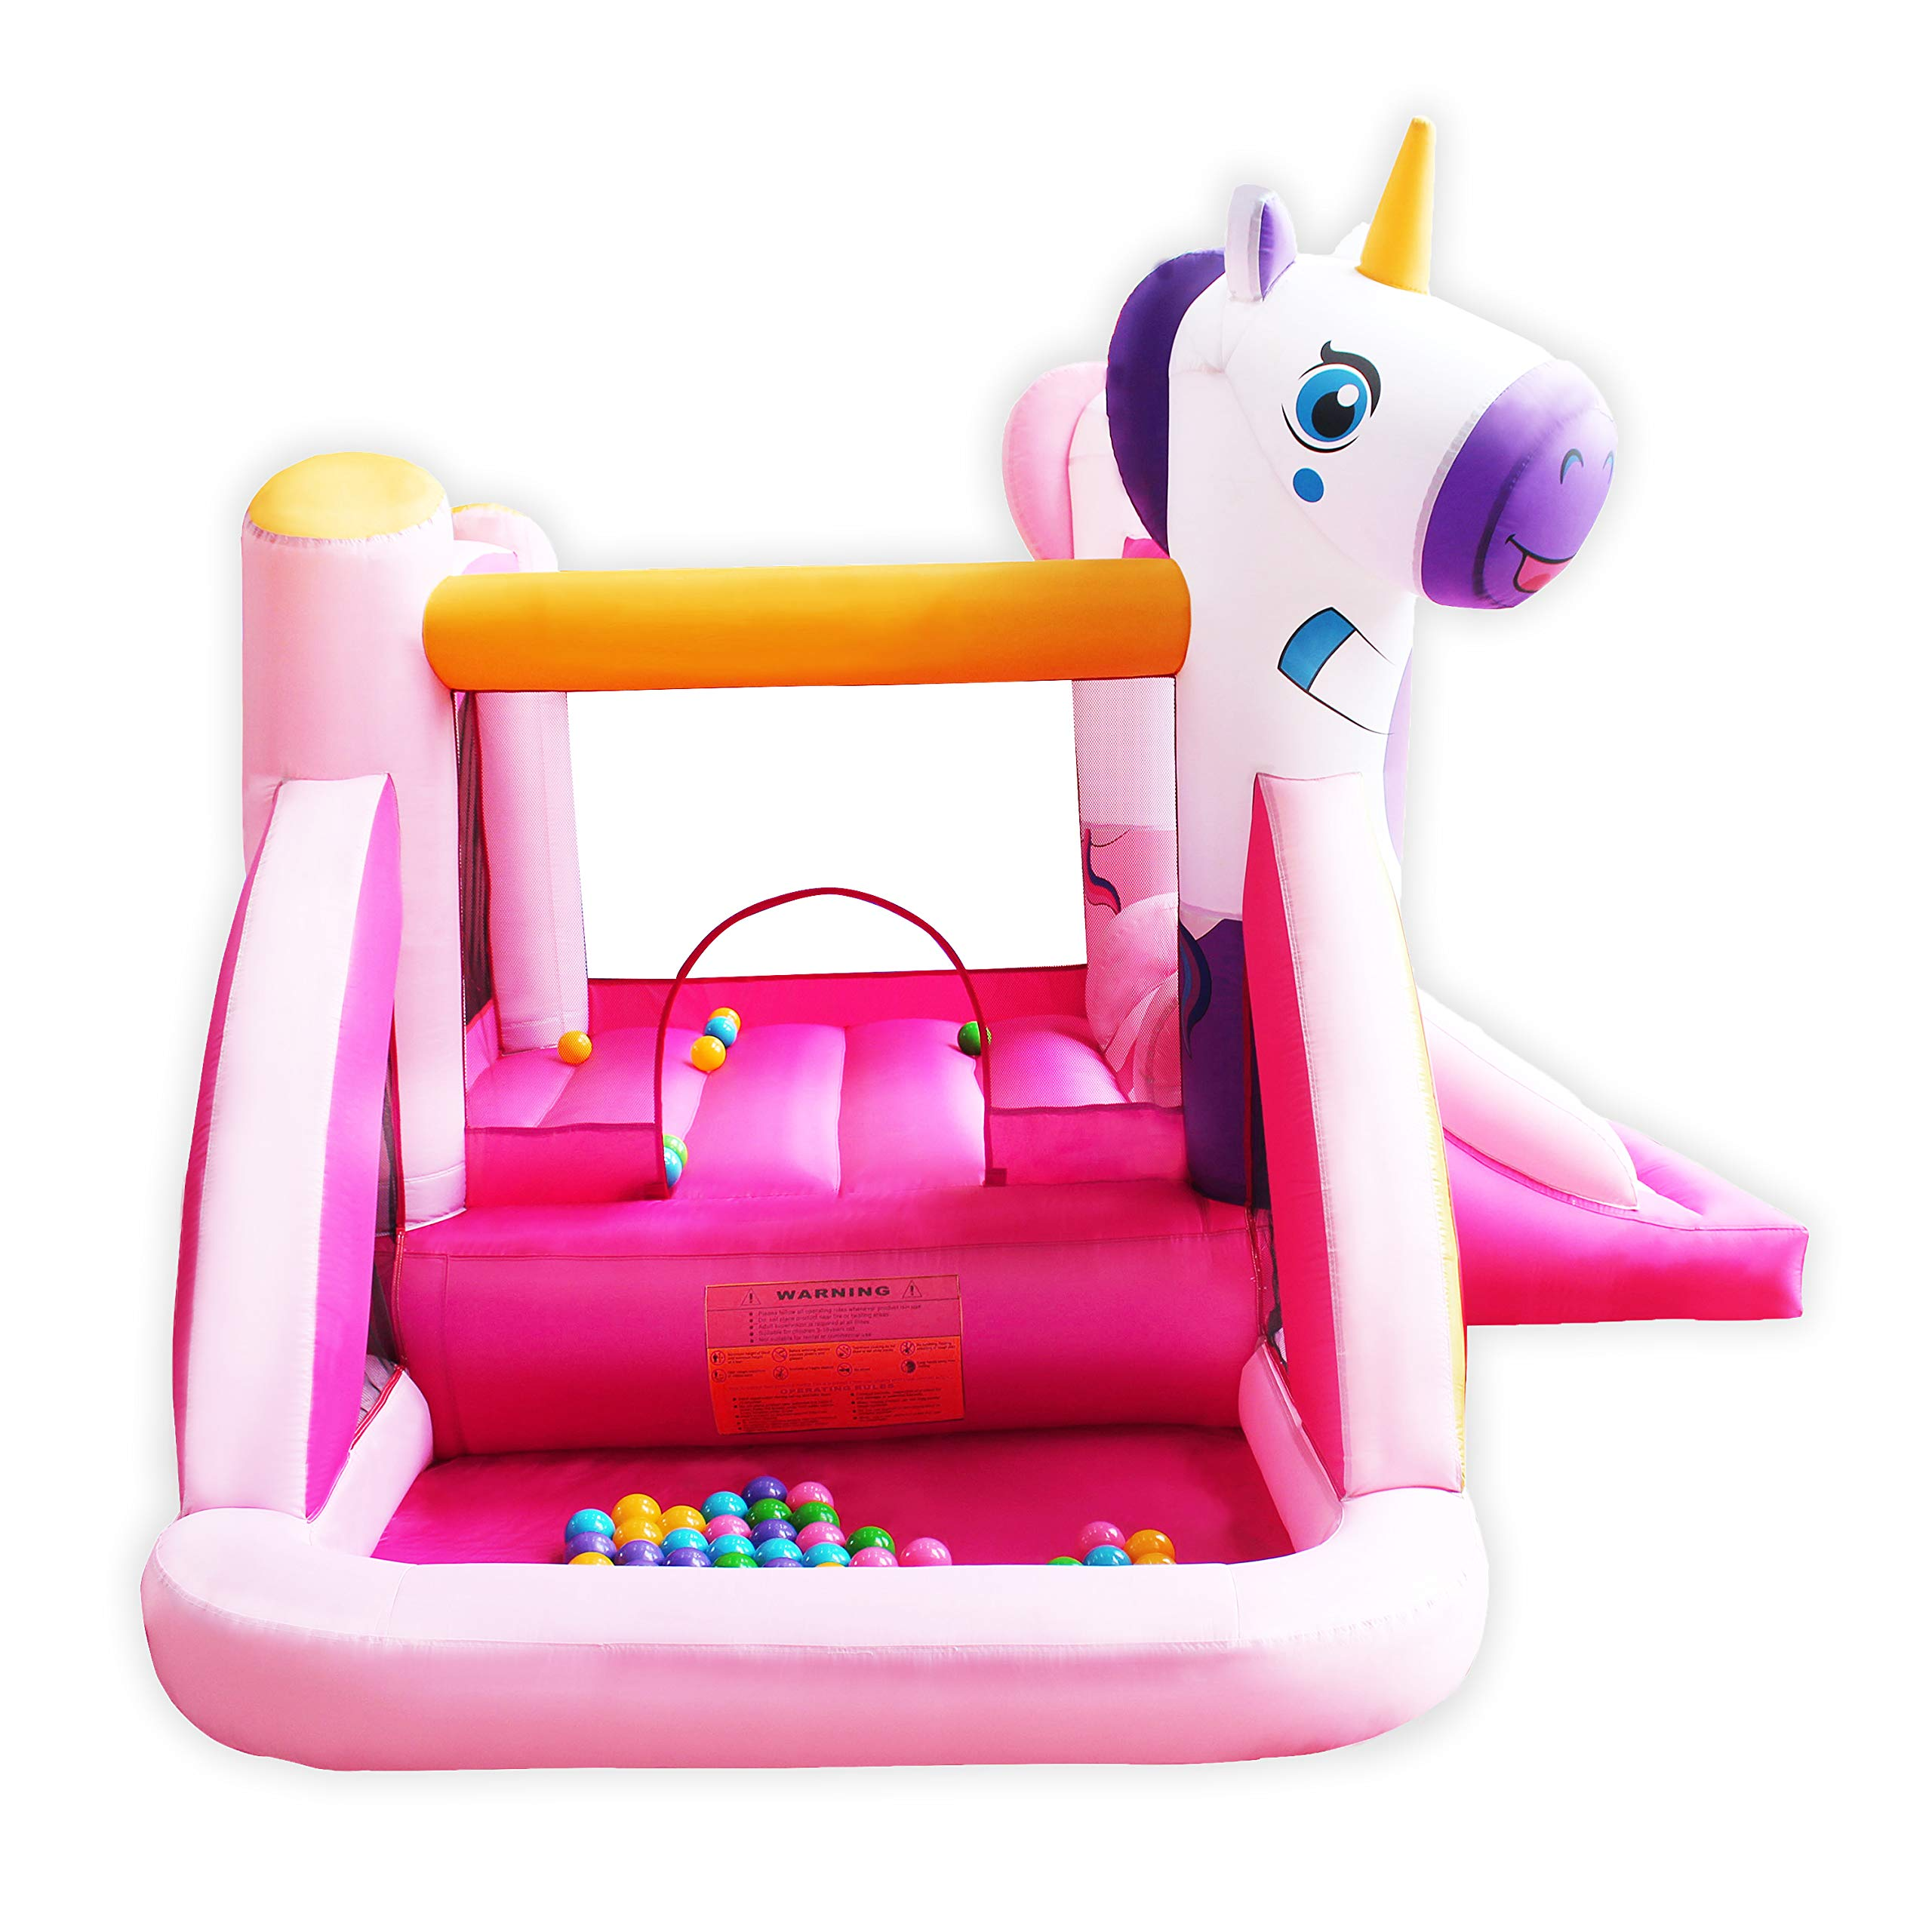 BESTPARTY Inflatable Bounce House with Slide for Princess Pink Unicorn Inflatable Bouncer House Jumper Houses by BESTPARTY (Image #5)